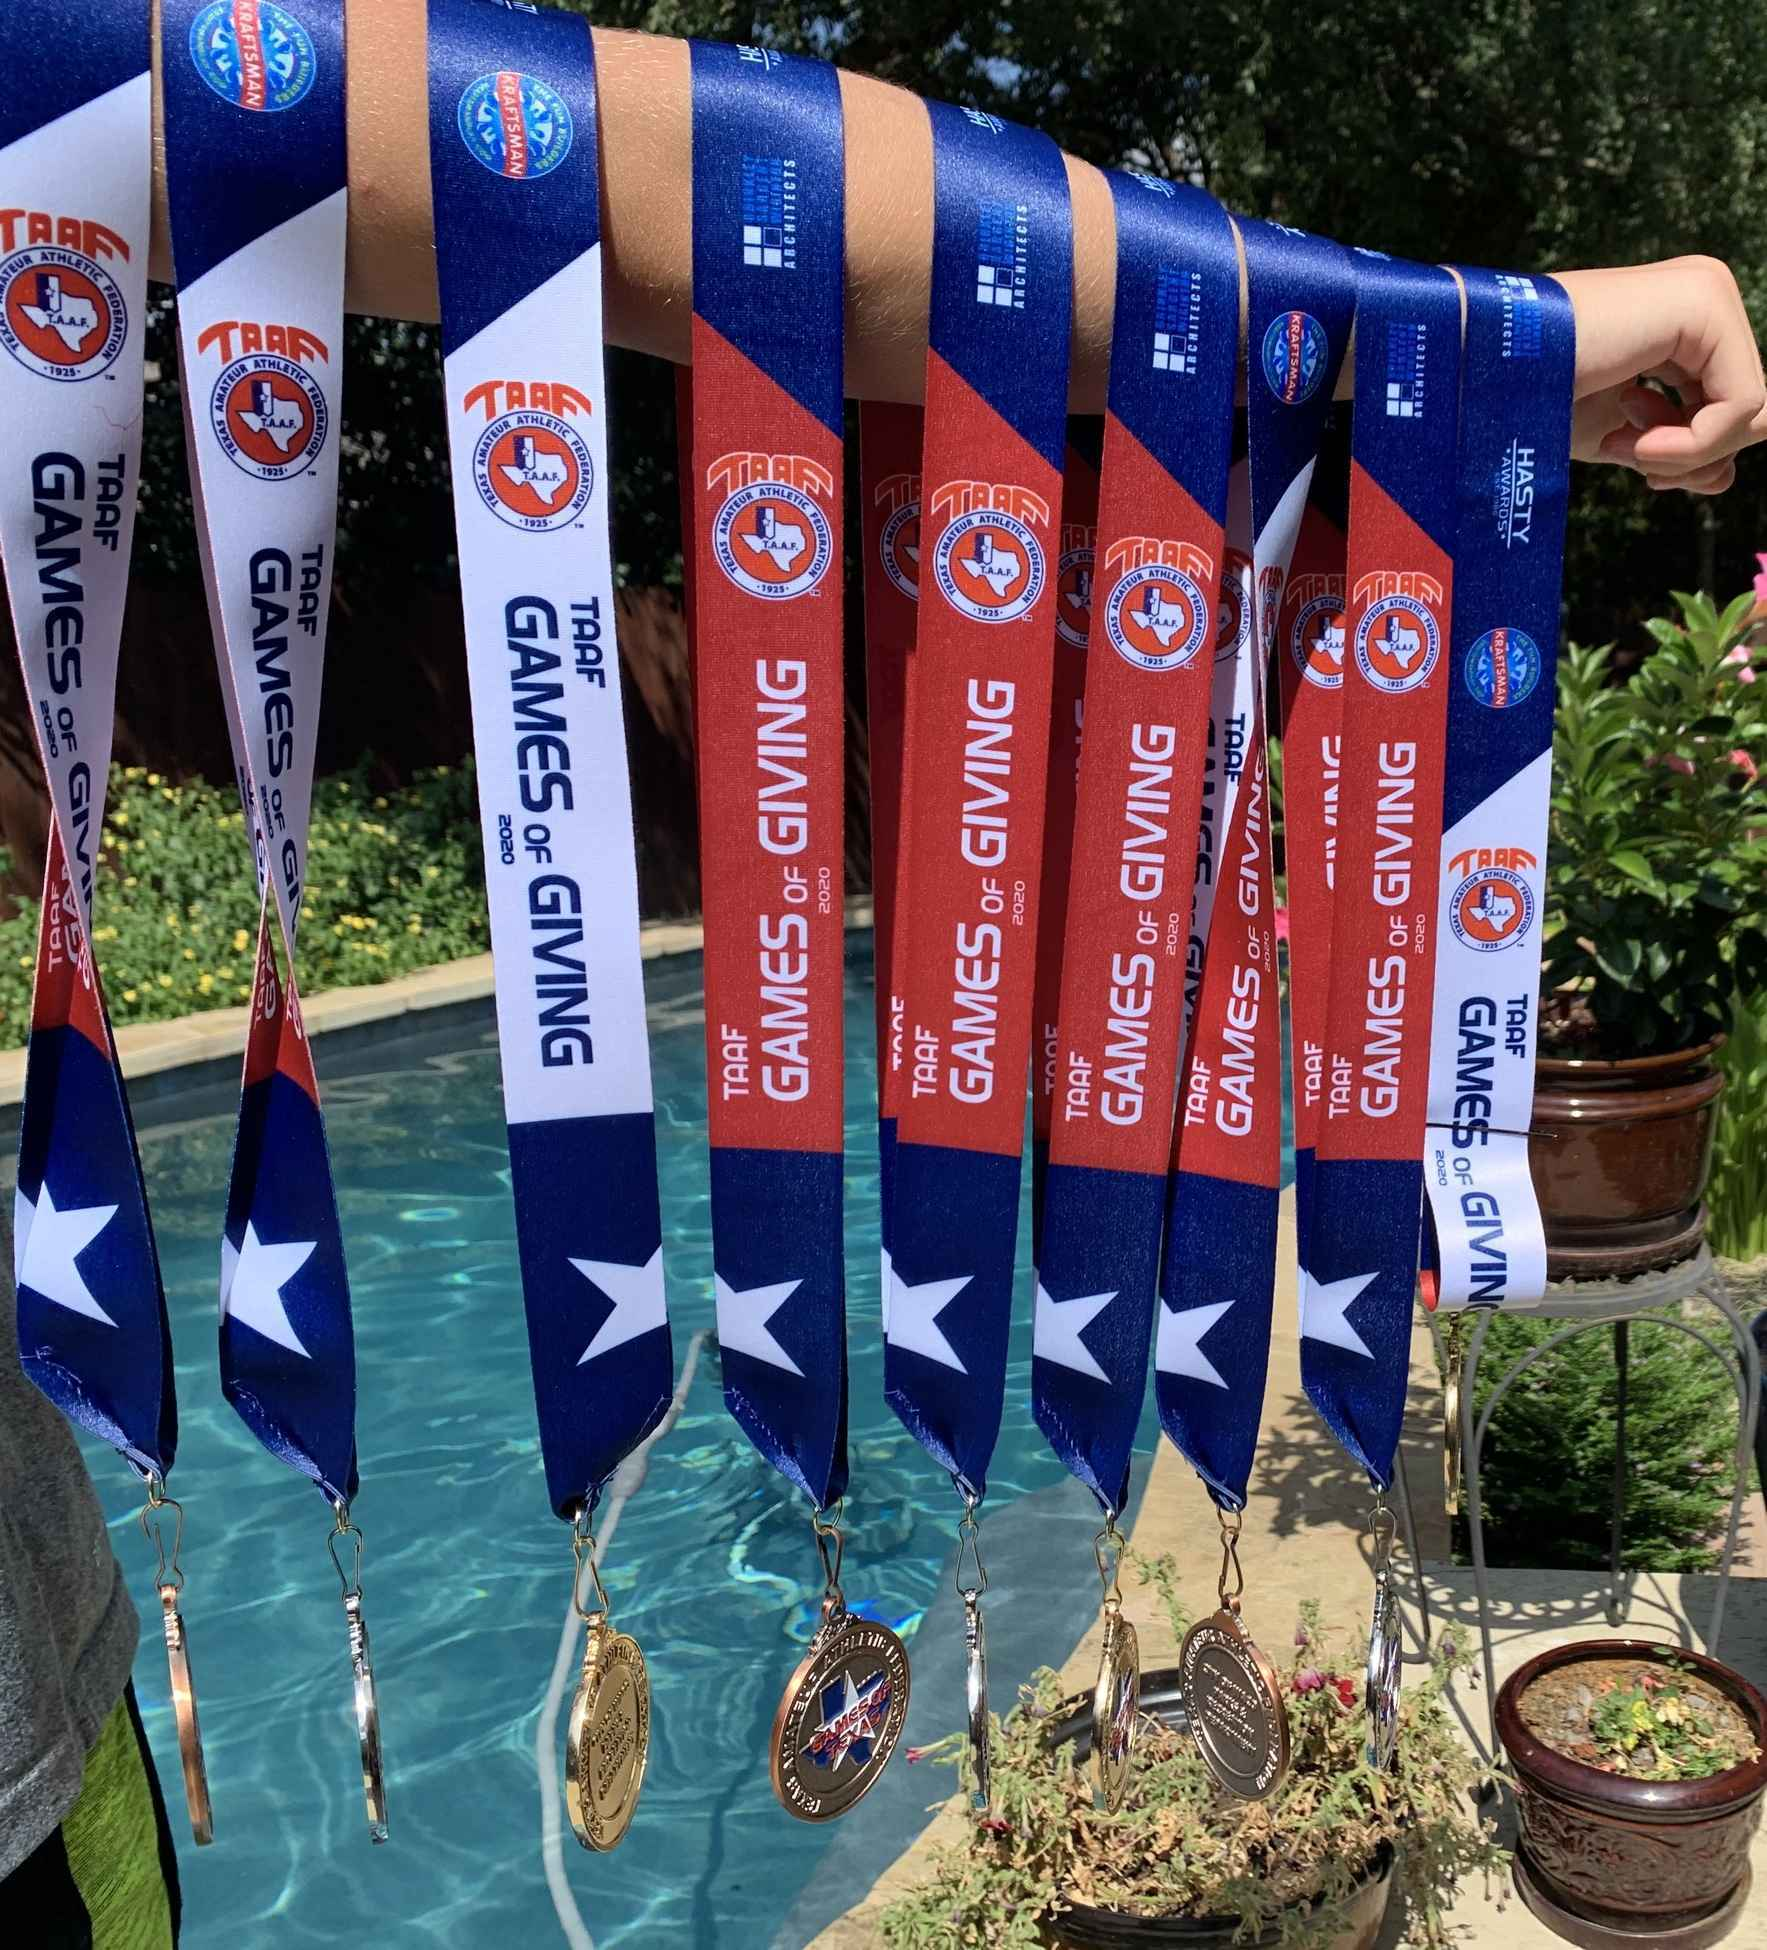 You don't win these medals with muscle, but with heart! image